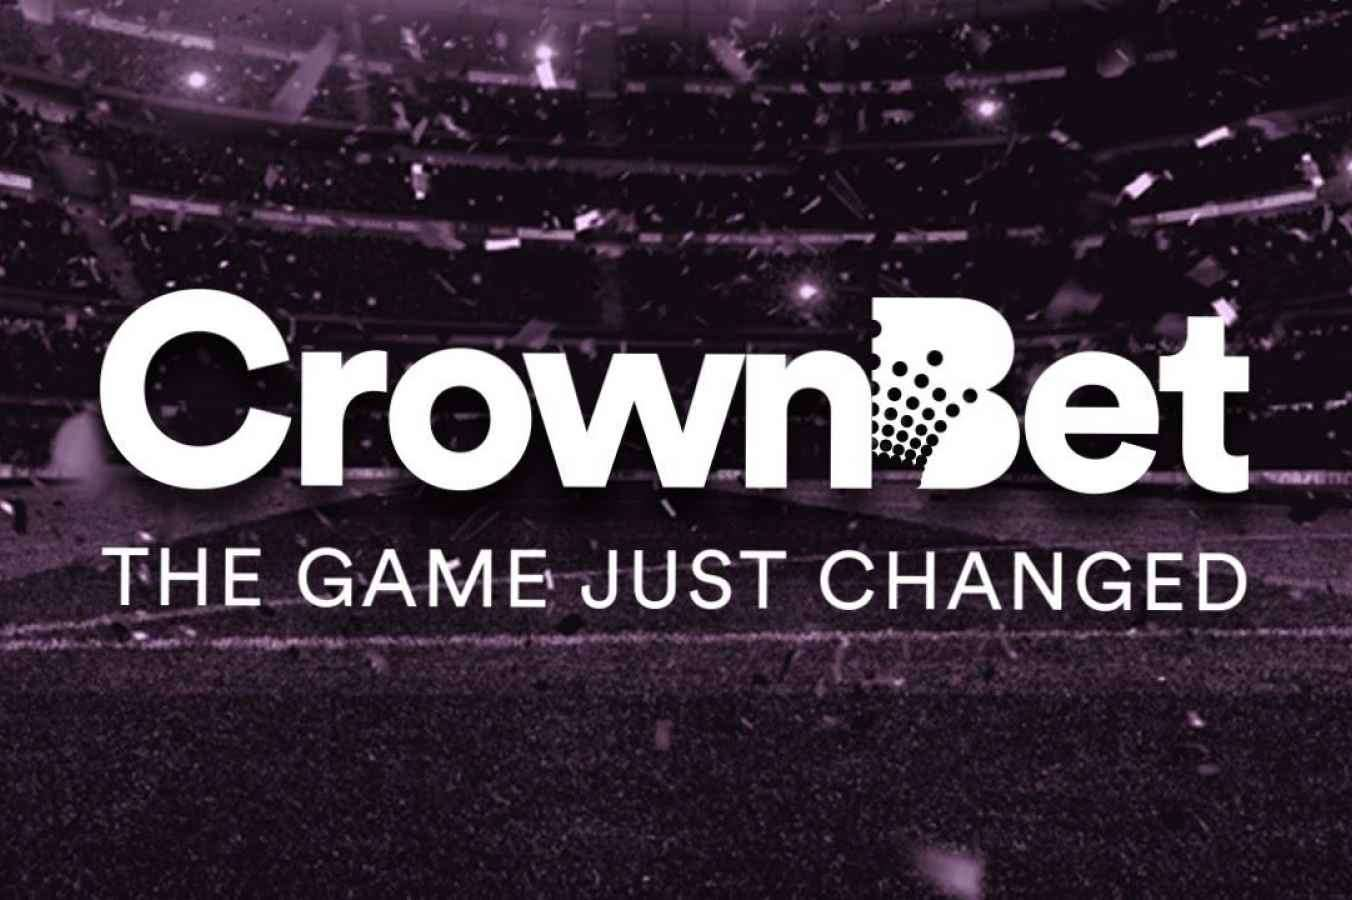 The Stars Group ups stake in CrownBet